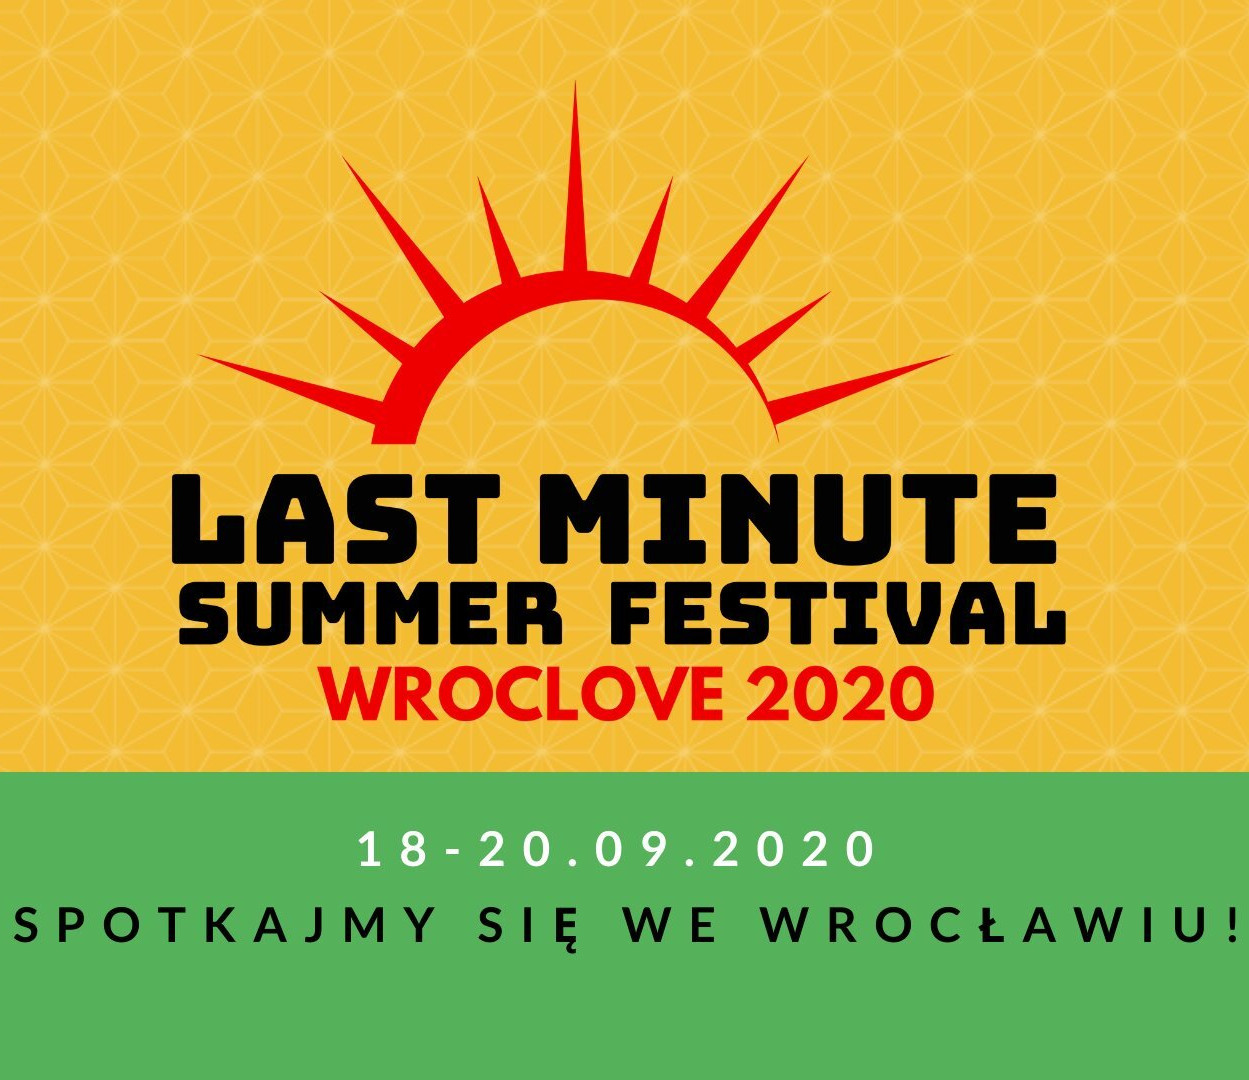 Last Minute Summer Festival - WrocLove2020